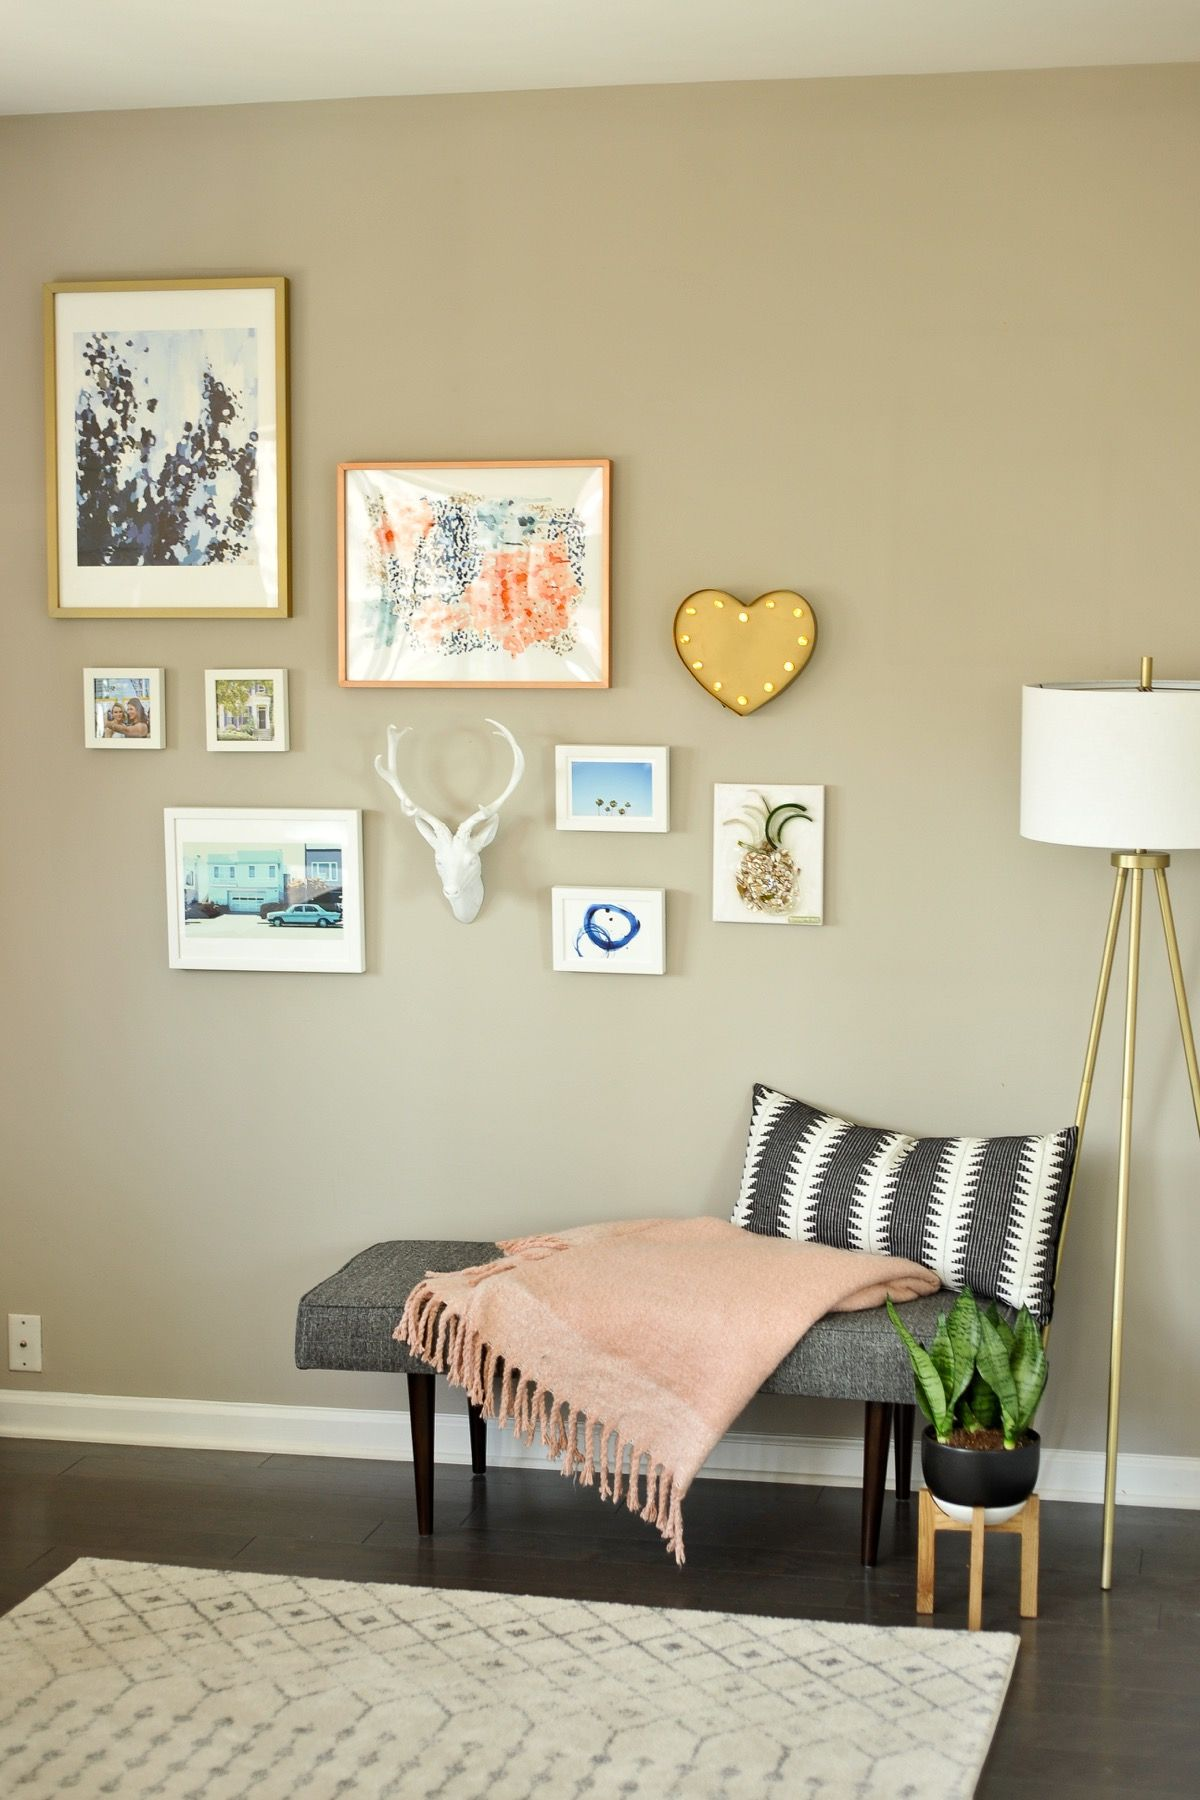 Fantastic Wall Decorating Ideas For Living Rooms To Try: My Gallery Wall + Gallery Wall Ideas For You To Try